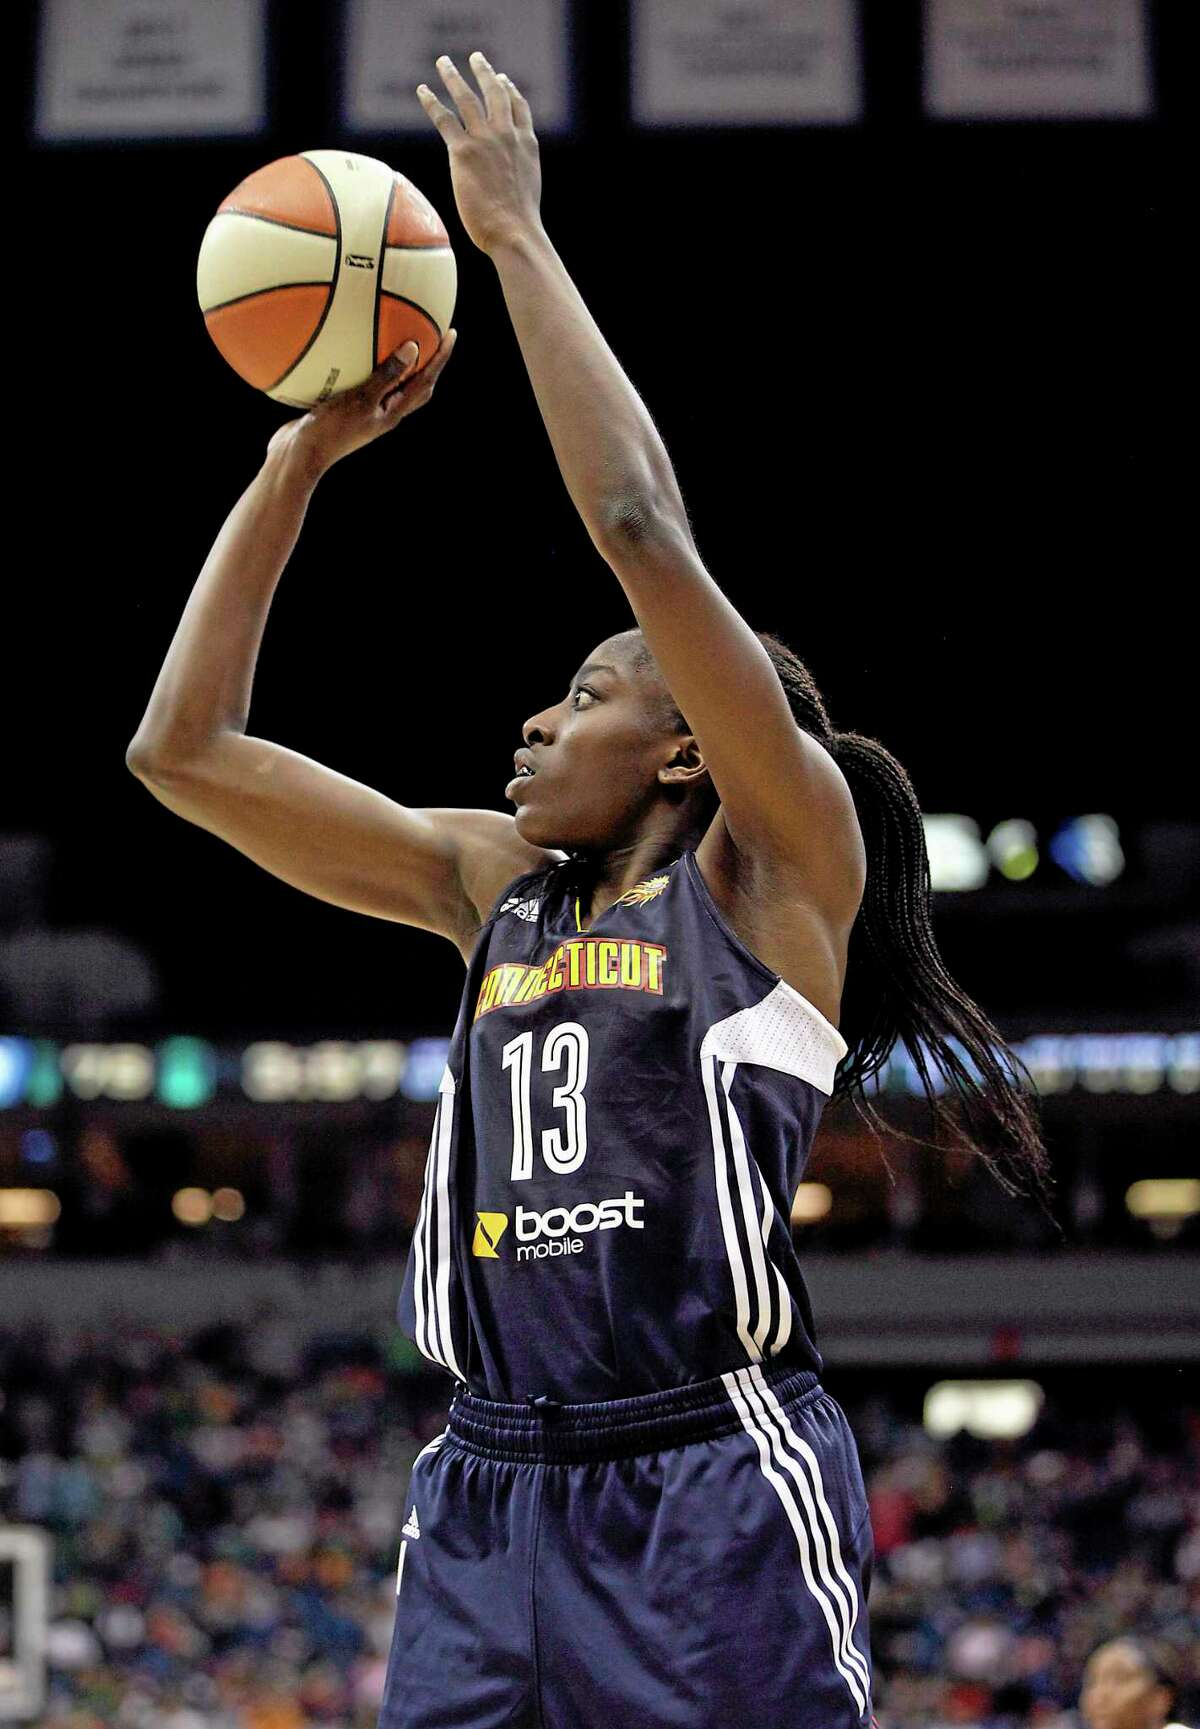 Forward Chiney Ogwumike and the Connecticut Sun lost to the Sky 78-68 on Wednesday afternoon in Chicago.